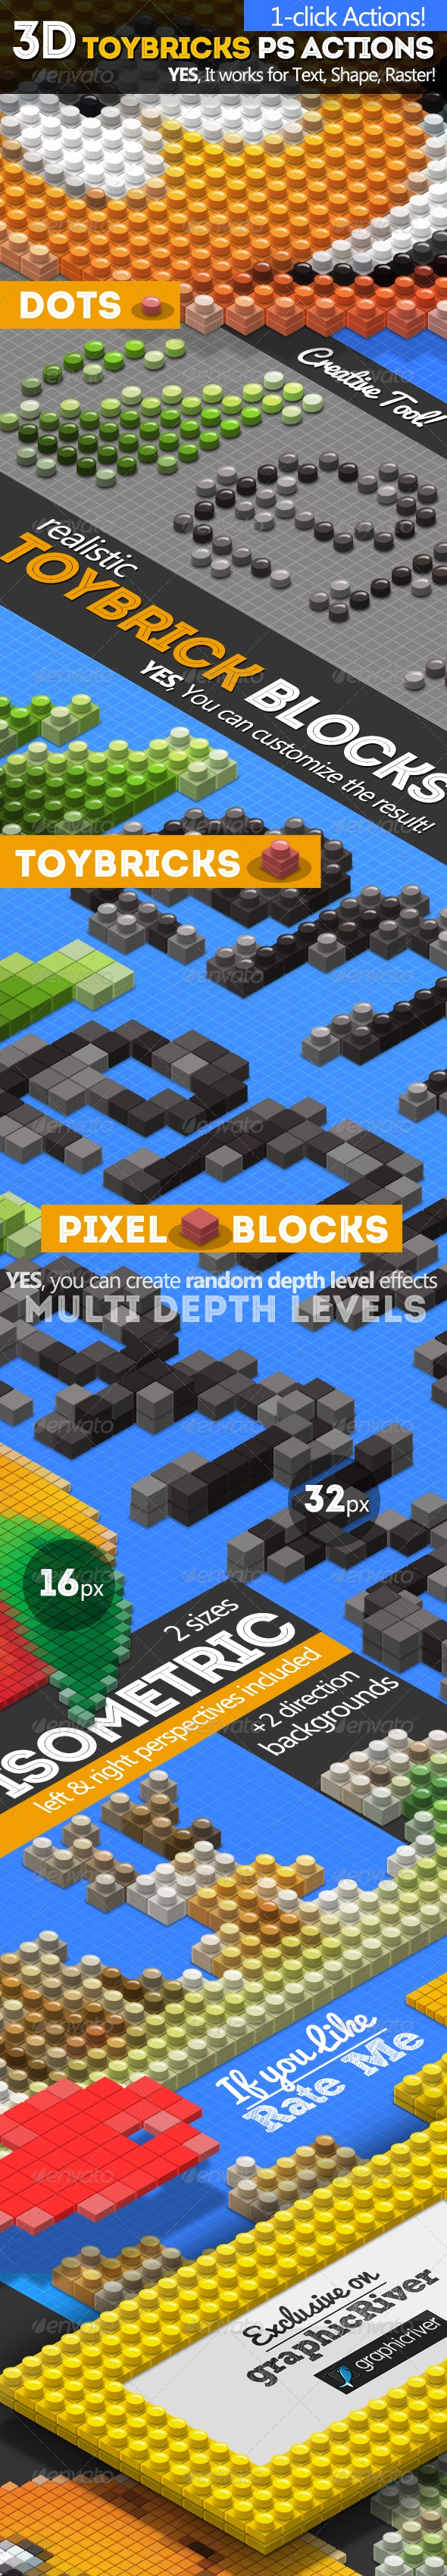 3D Isometric Toy Bricks Photoshop Actions - Utilities Actions